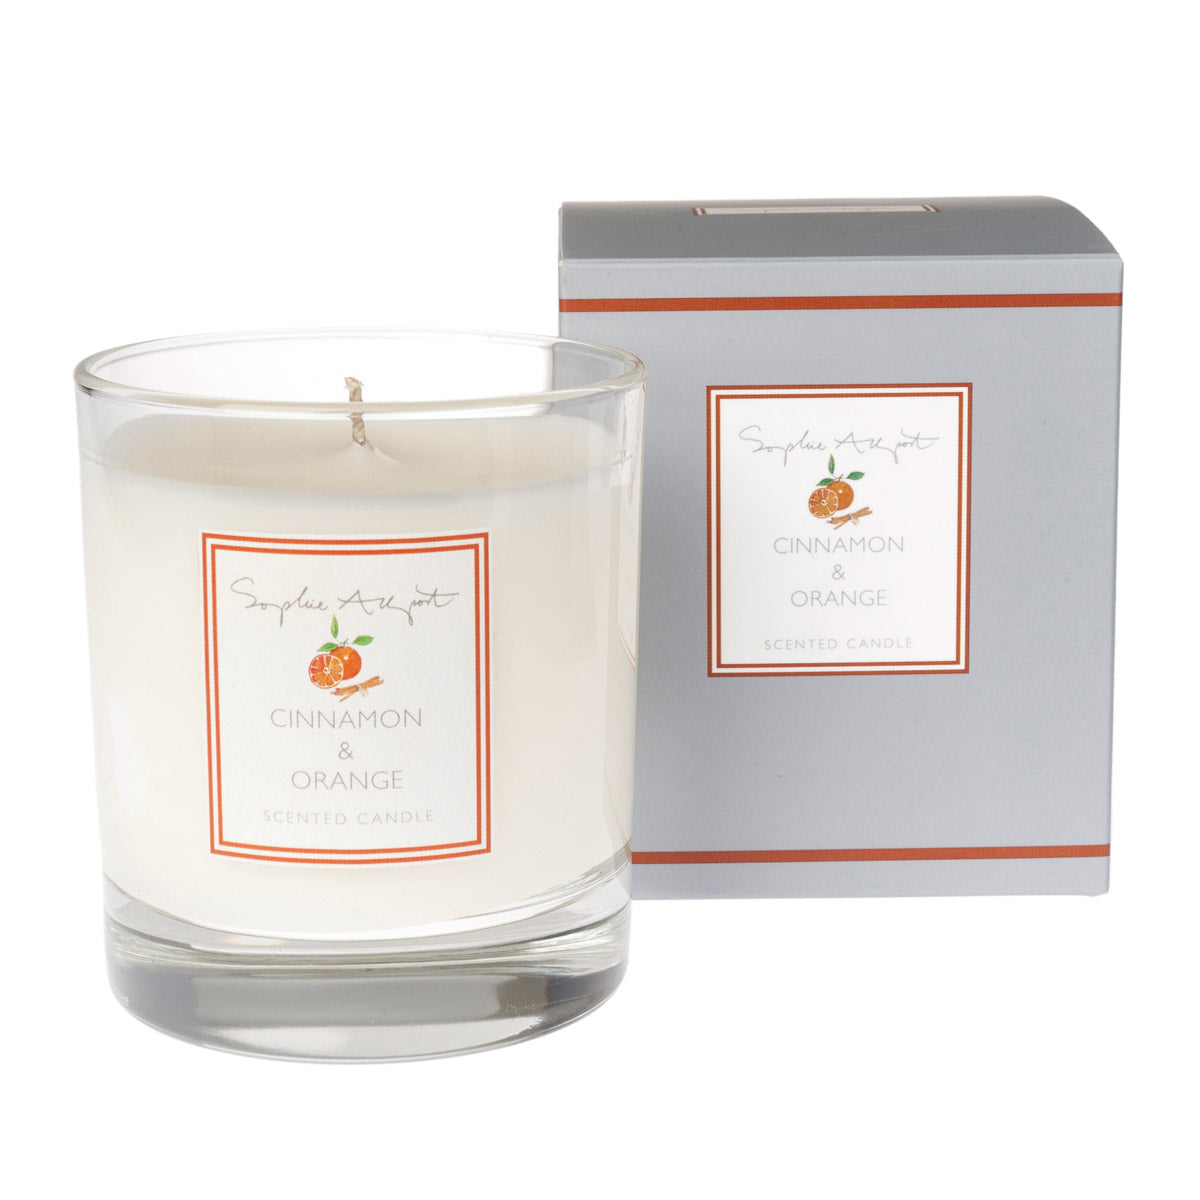 Cinnamon Orange Scented Candle 220g By Sophie Allport